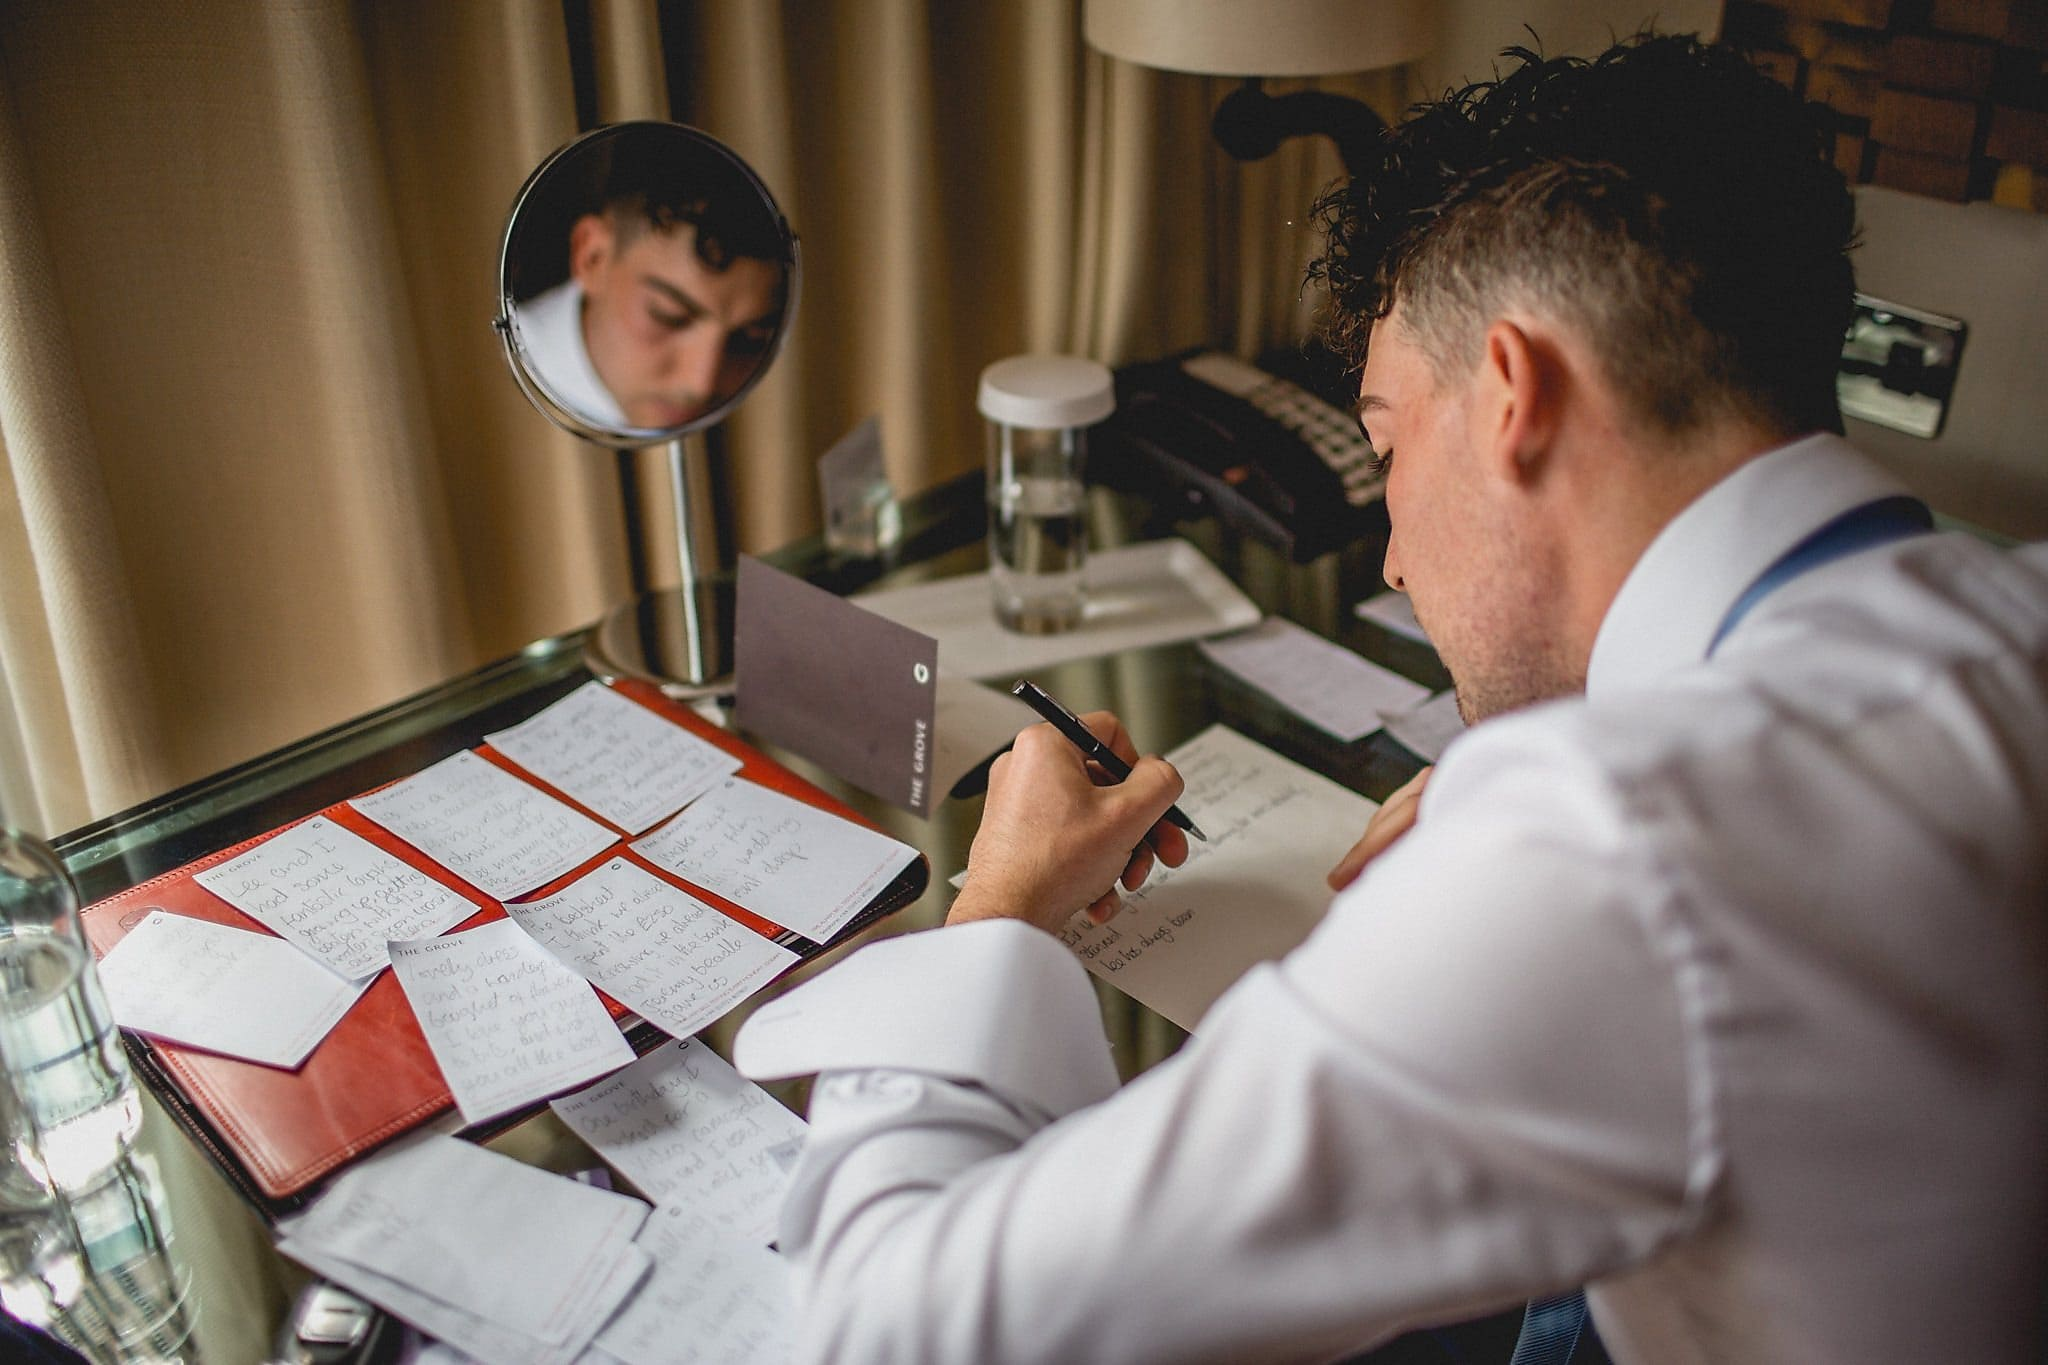 Speech prep in the groom's dressing room